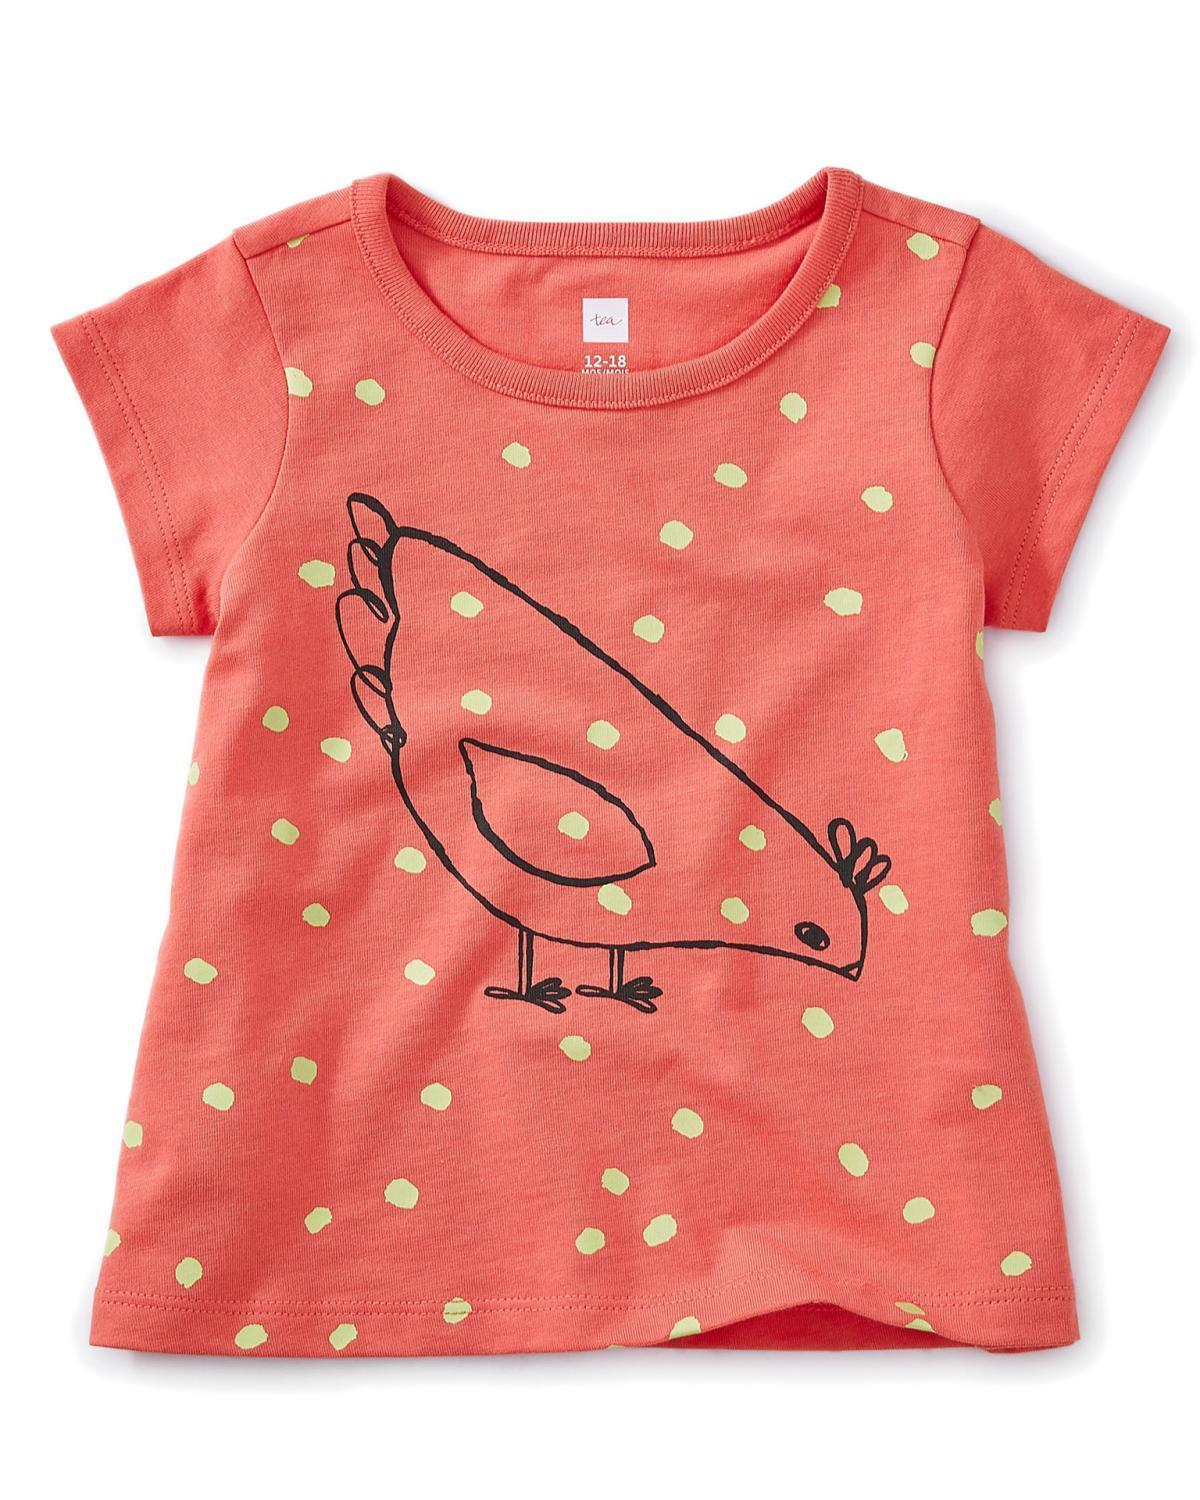 ad3c3338e8c Little tea collection baby girl 12-18 red hen baby graphic tee